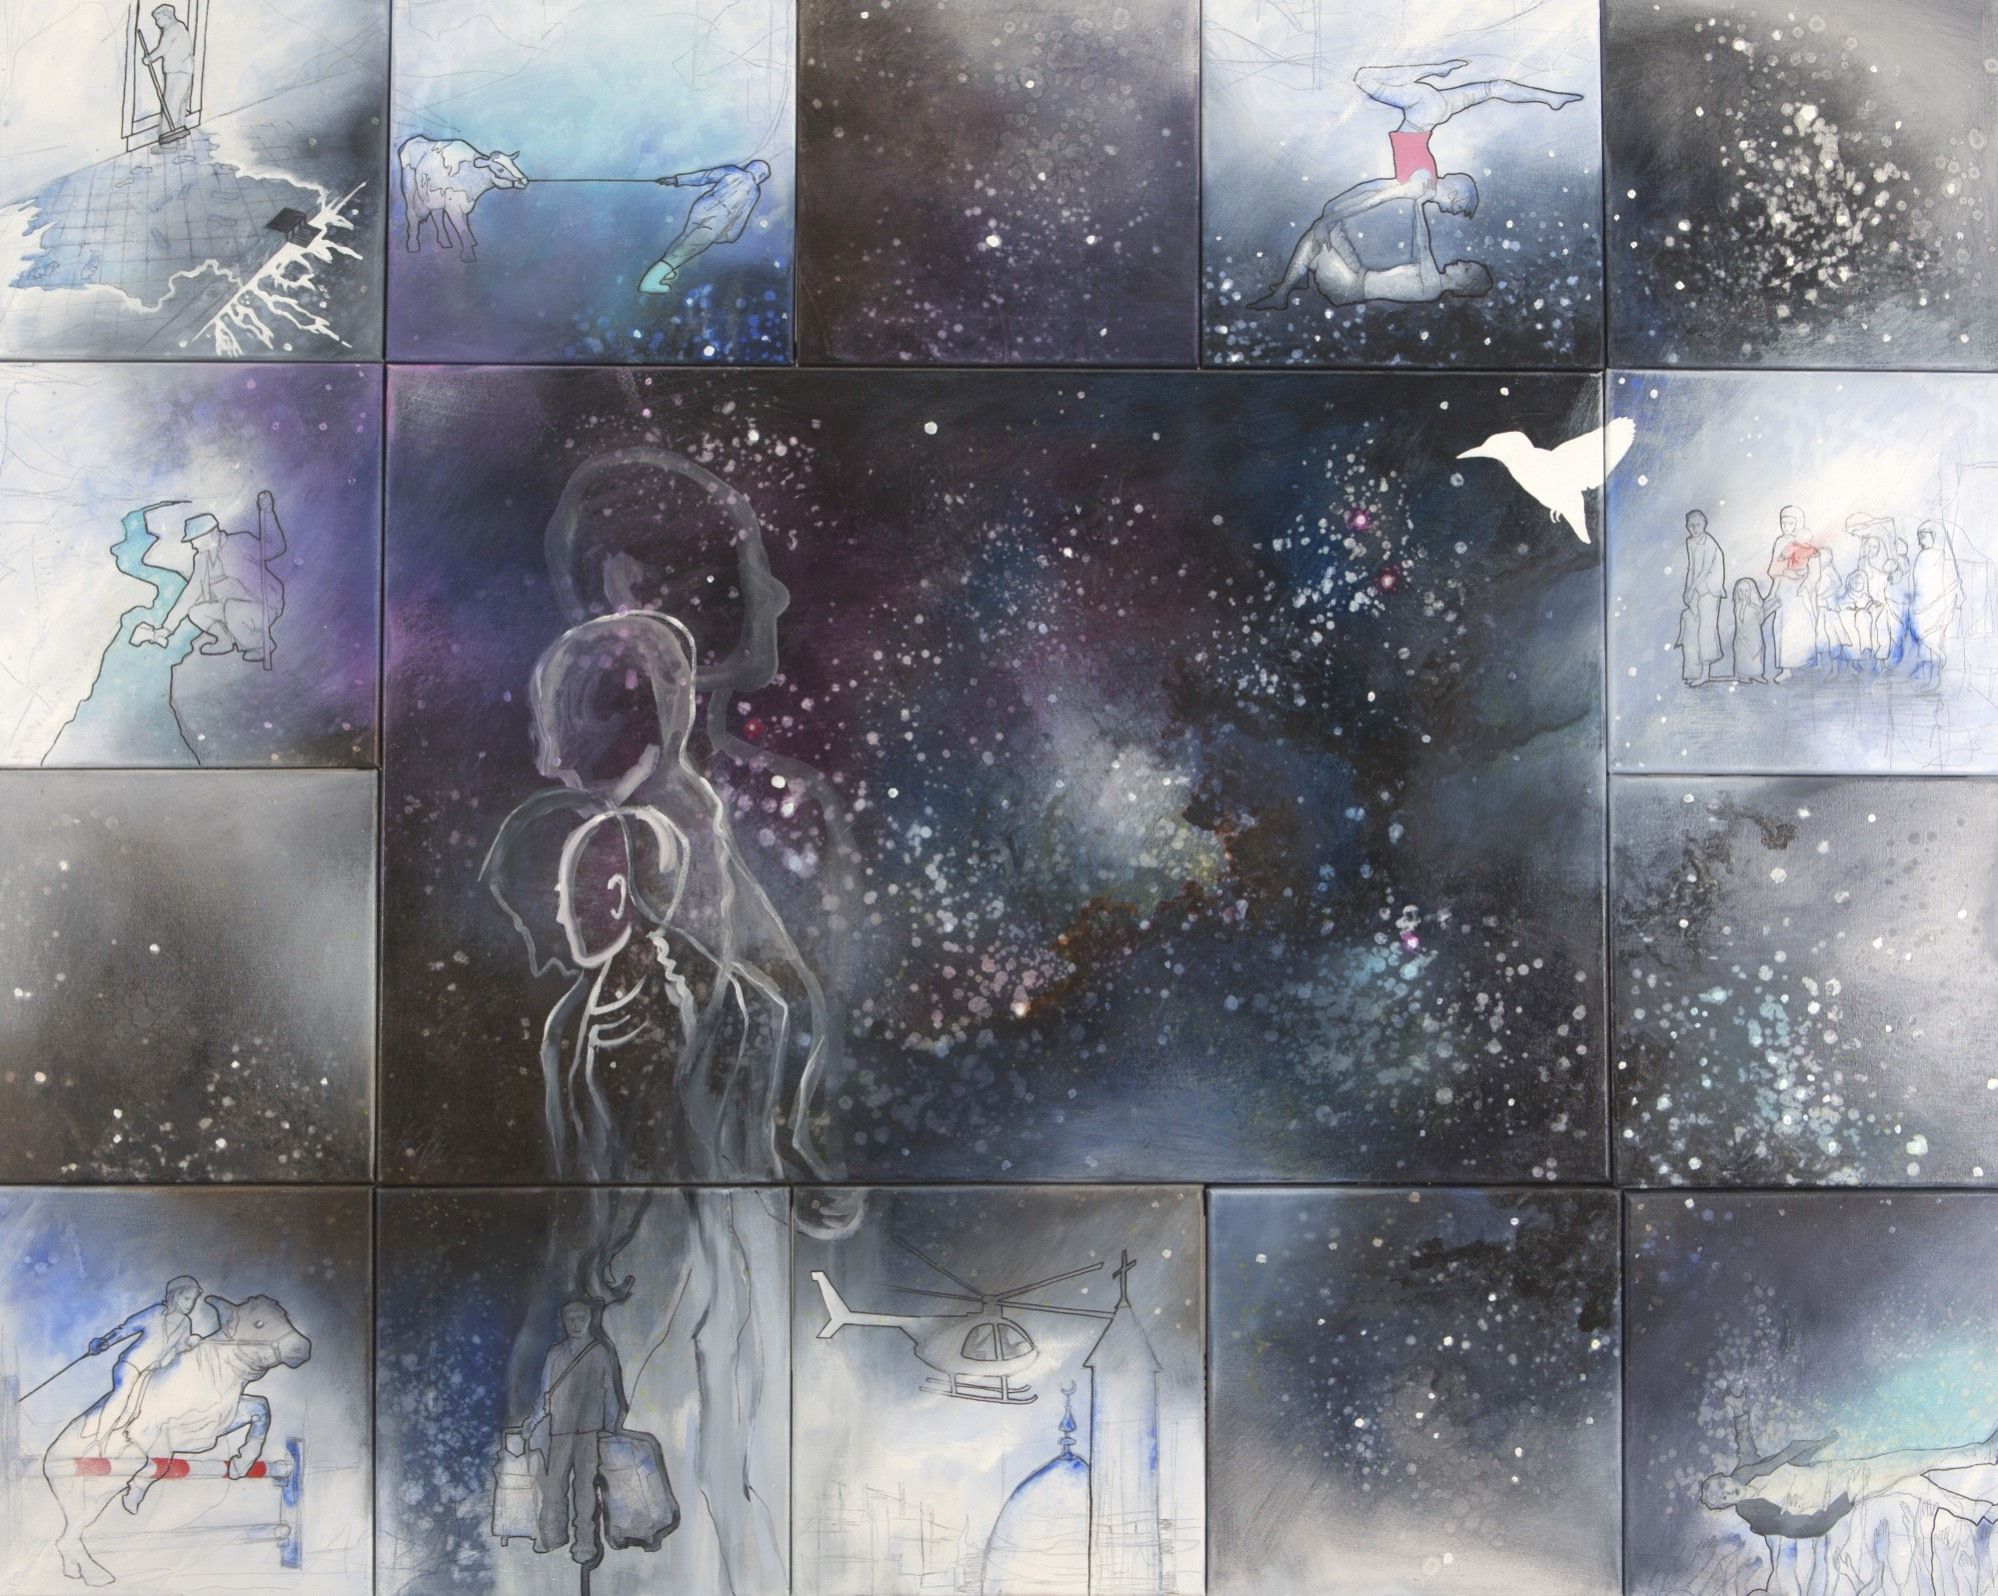 Universe, the things we do, 120 x 150 cm, mixed media on canvas